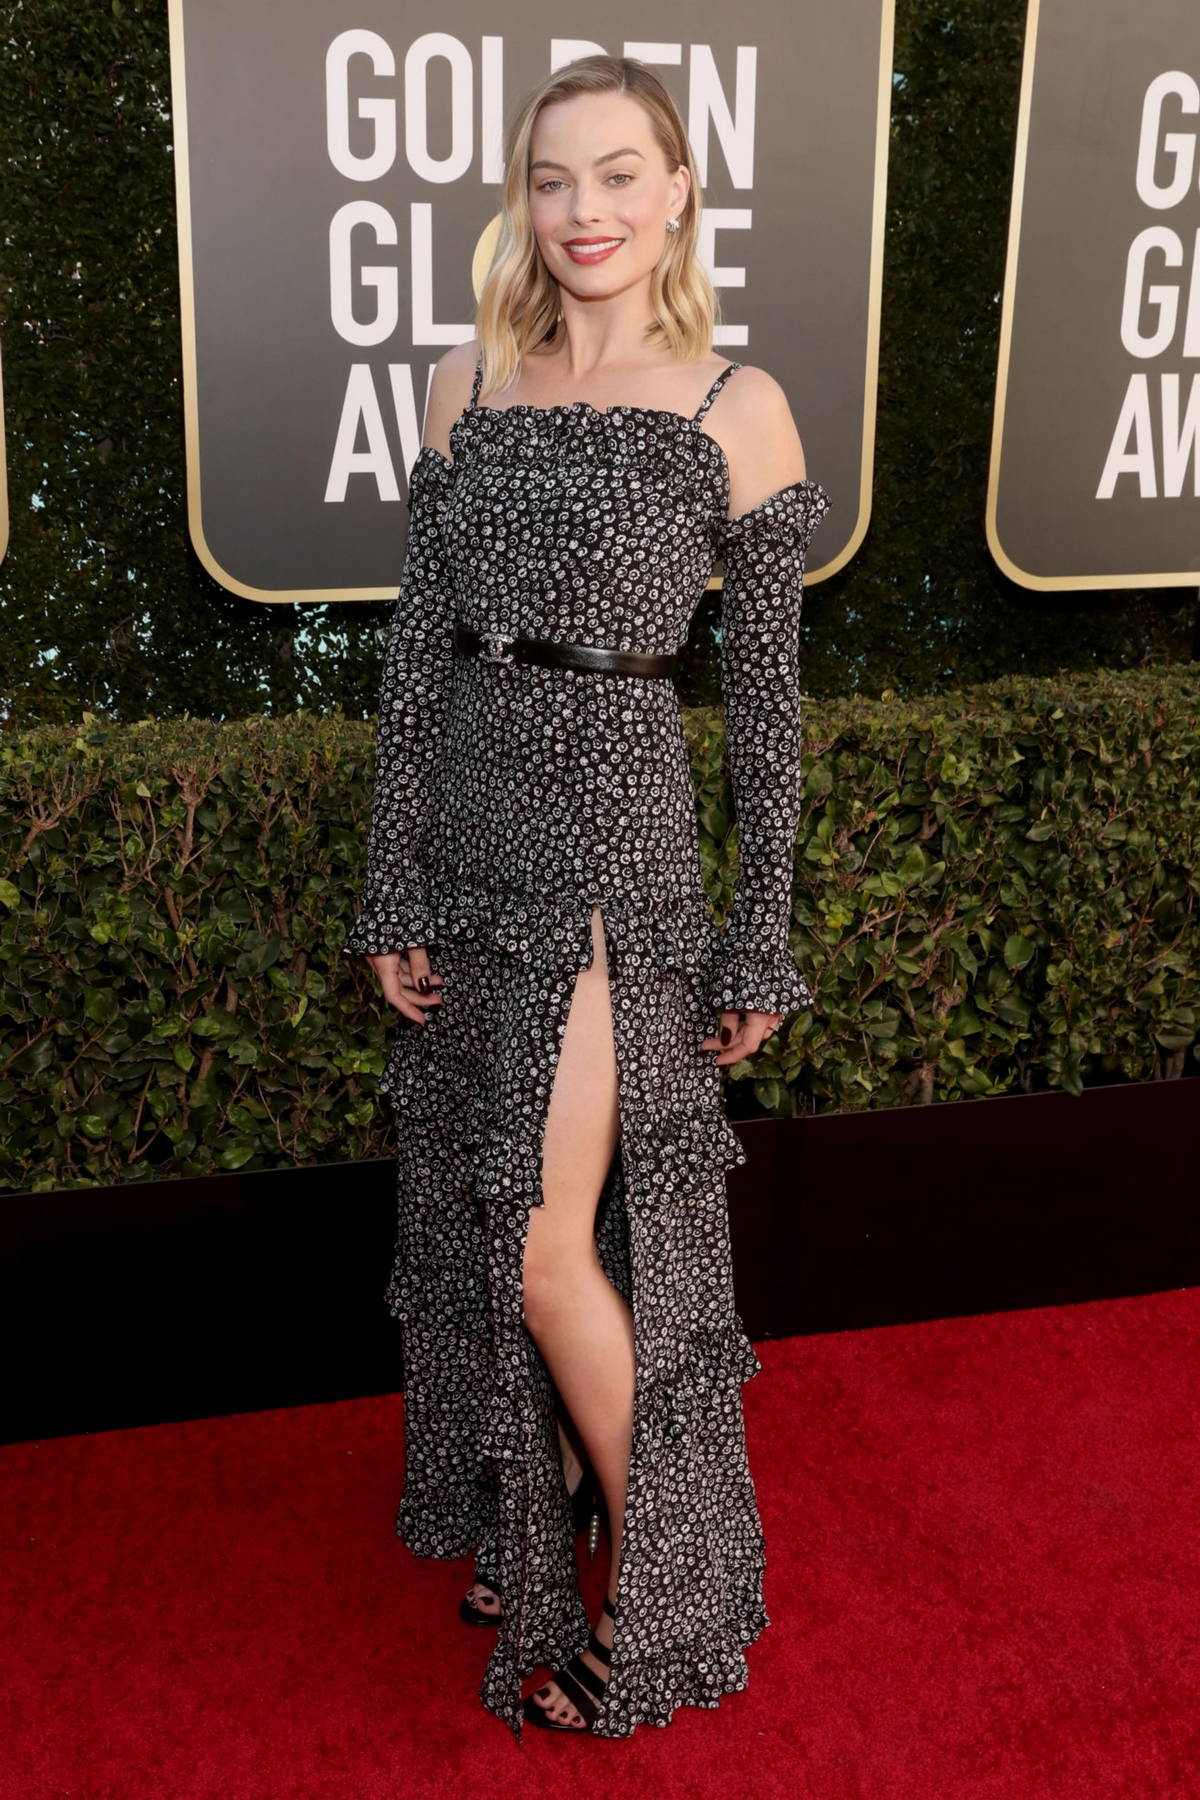 Margot Robbie attends the 78th Annual Golden Globe Awards at The Beverly Hilton in Beverly Hills, California